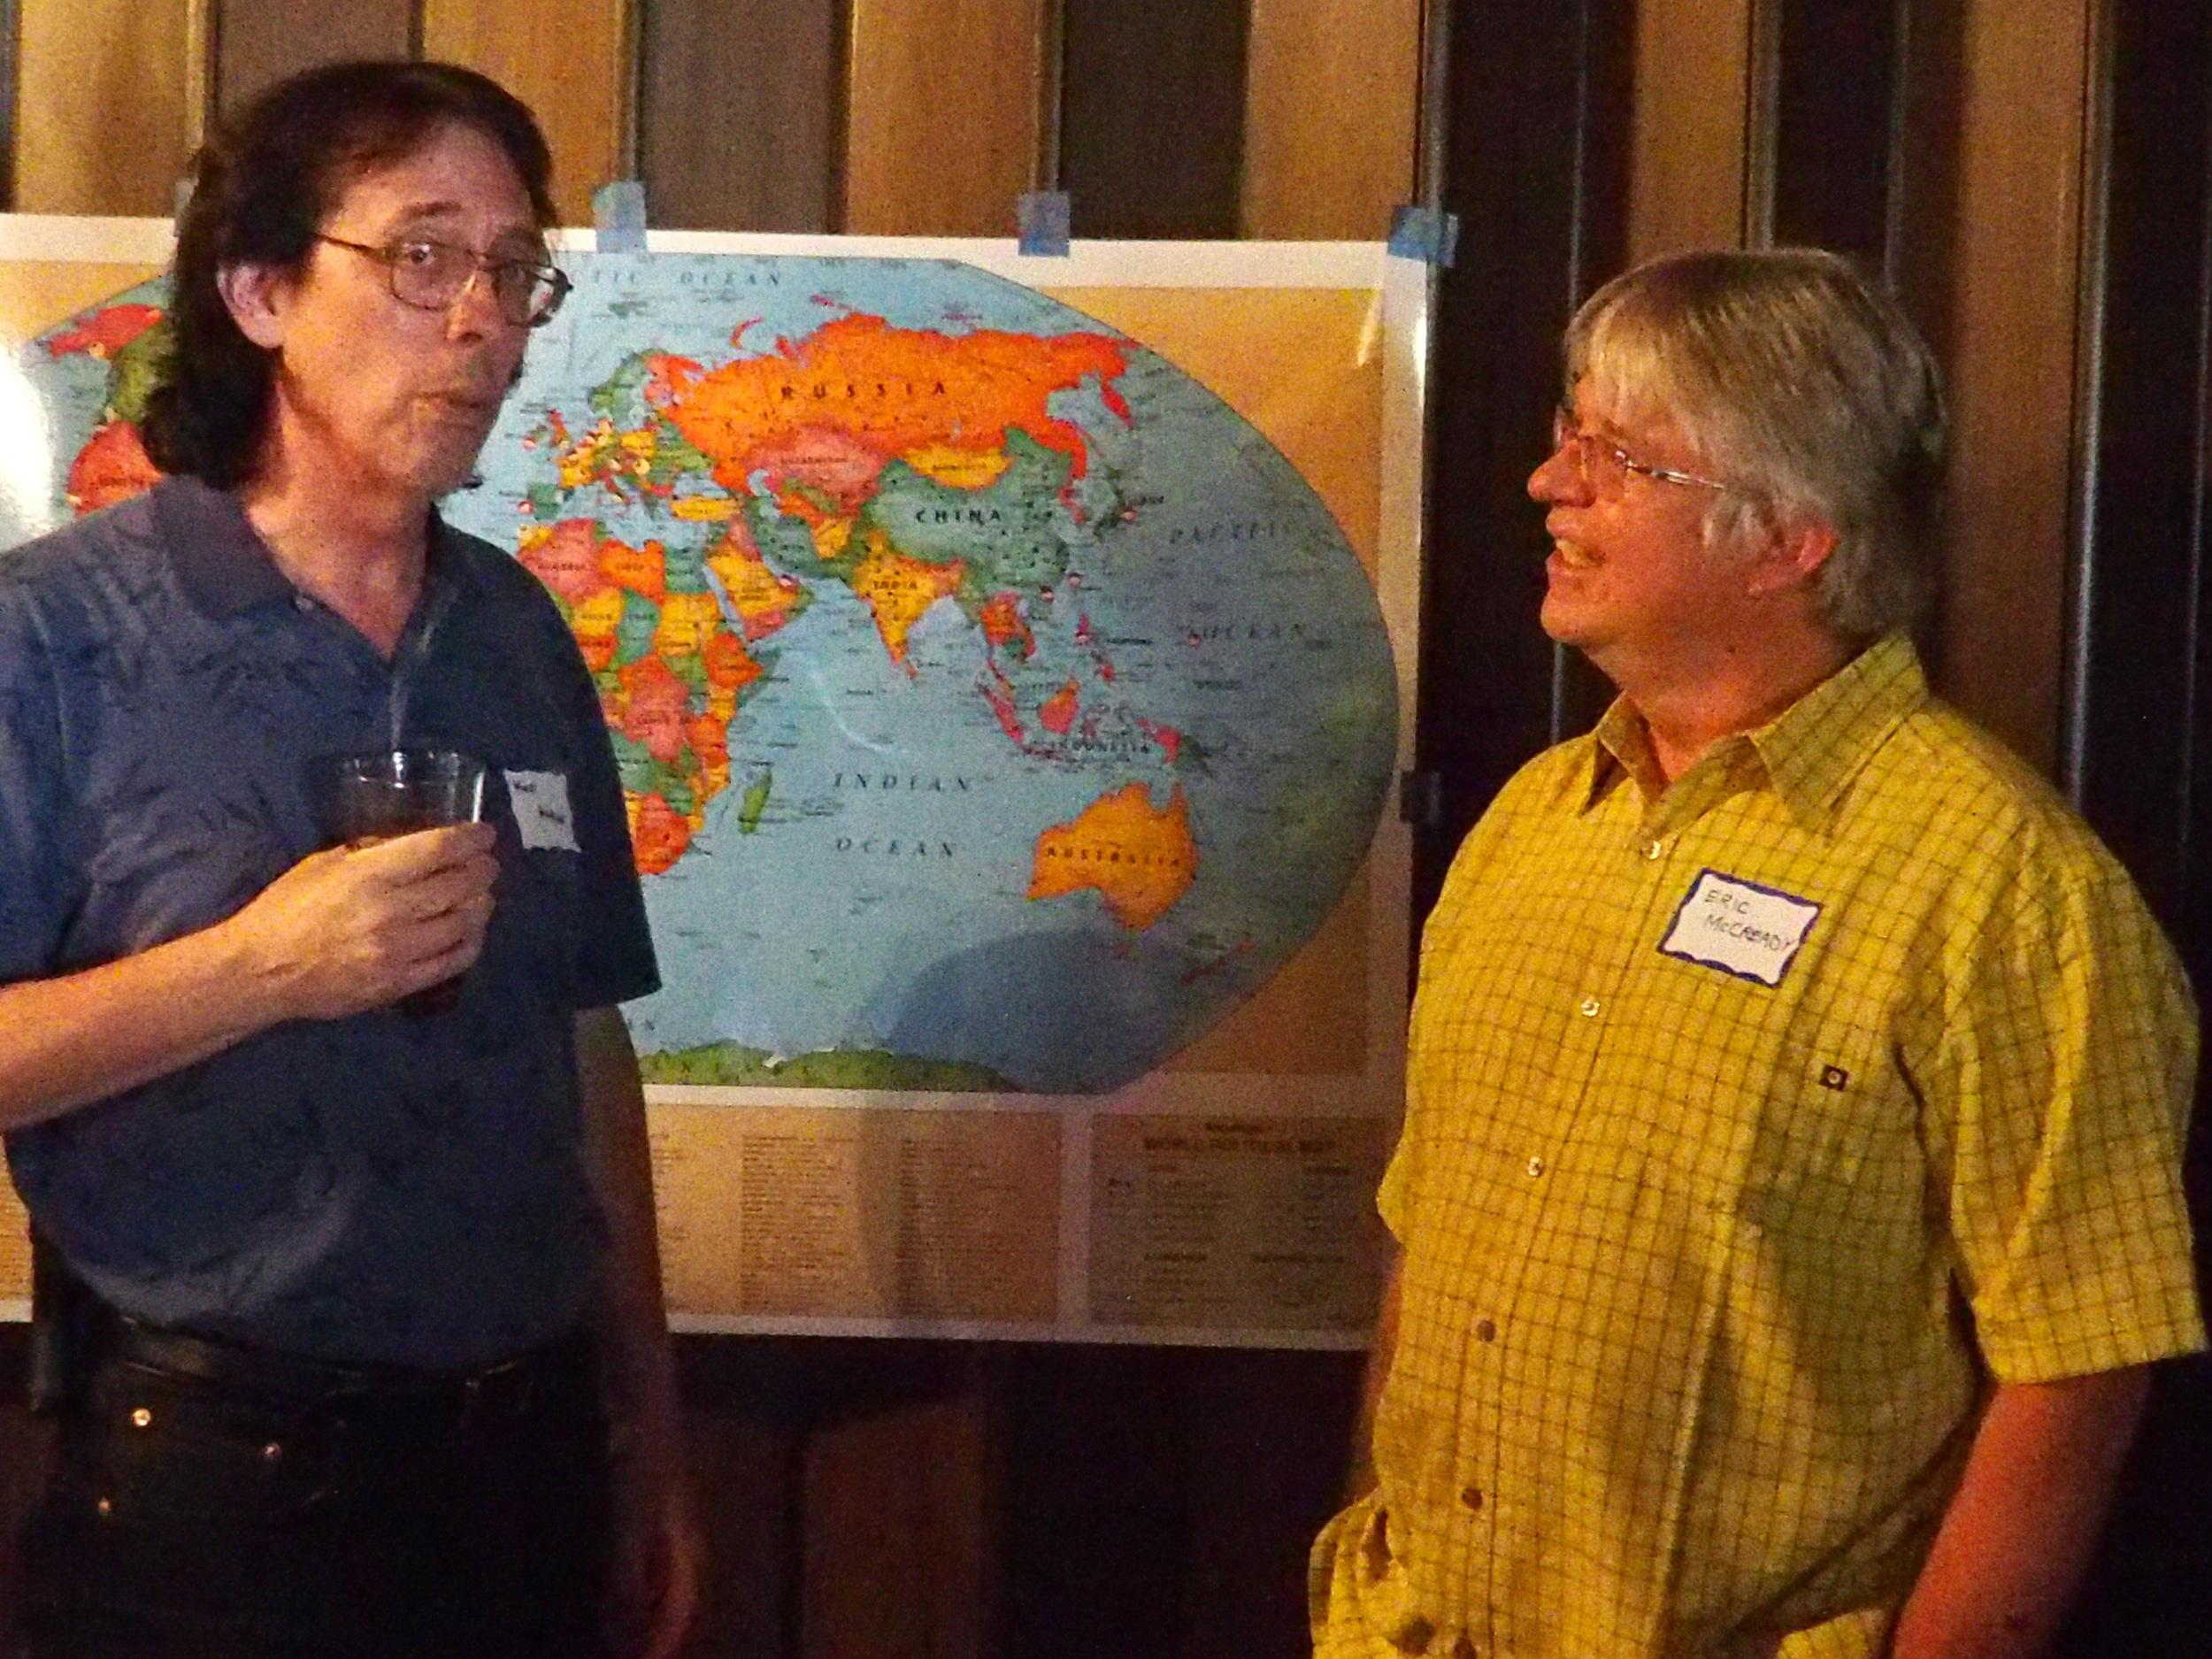 Ken Althiser and Eric McCready in front of the world map.